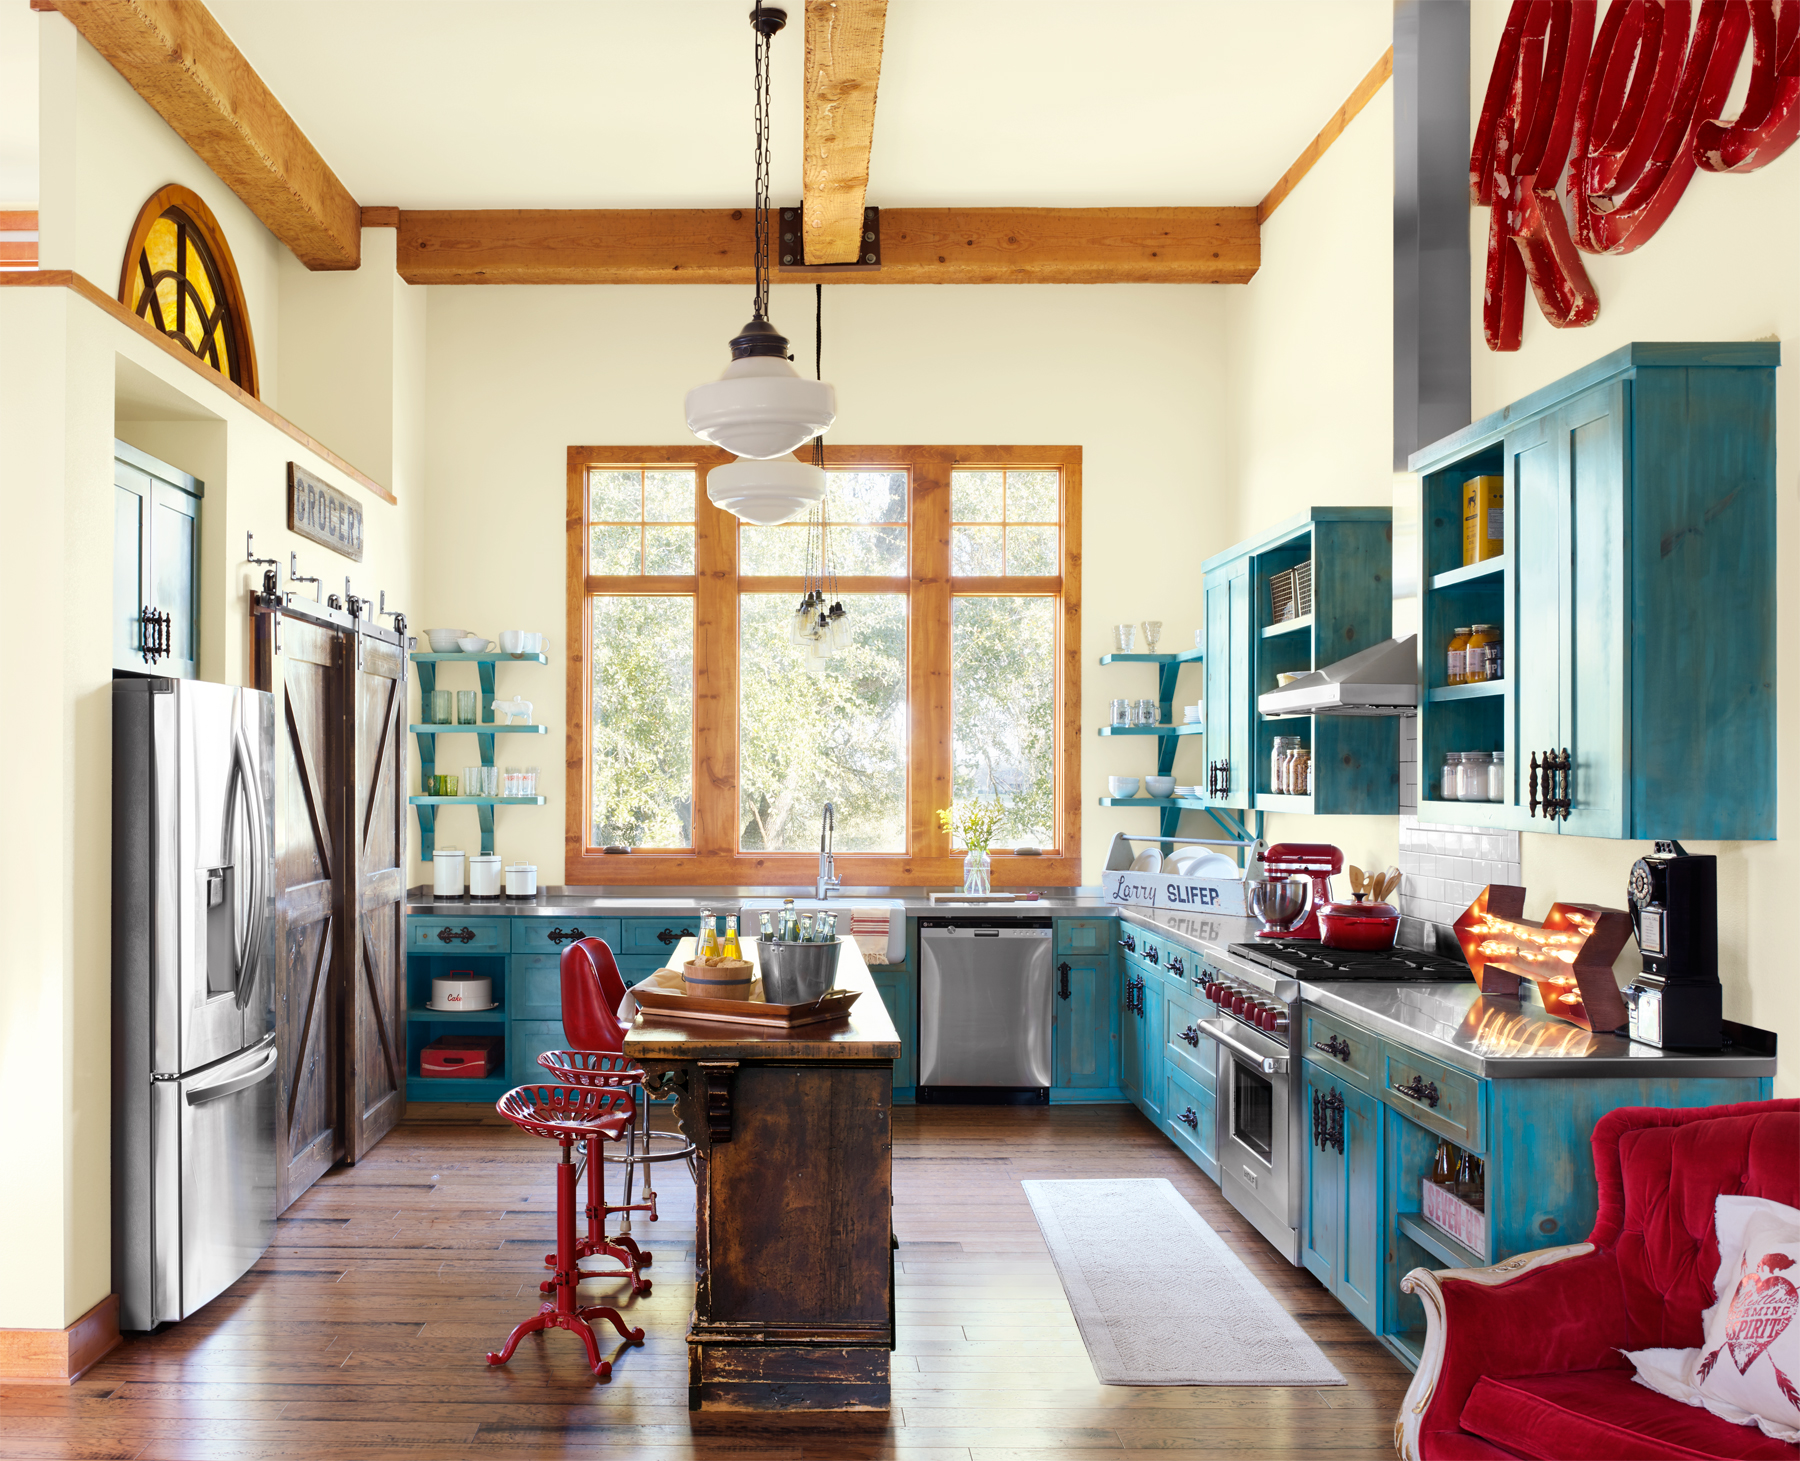 10 Ways To Add Colorful Vintage Style To Your Kitchen